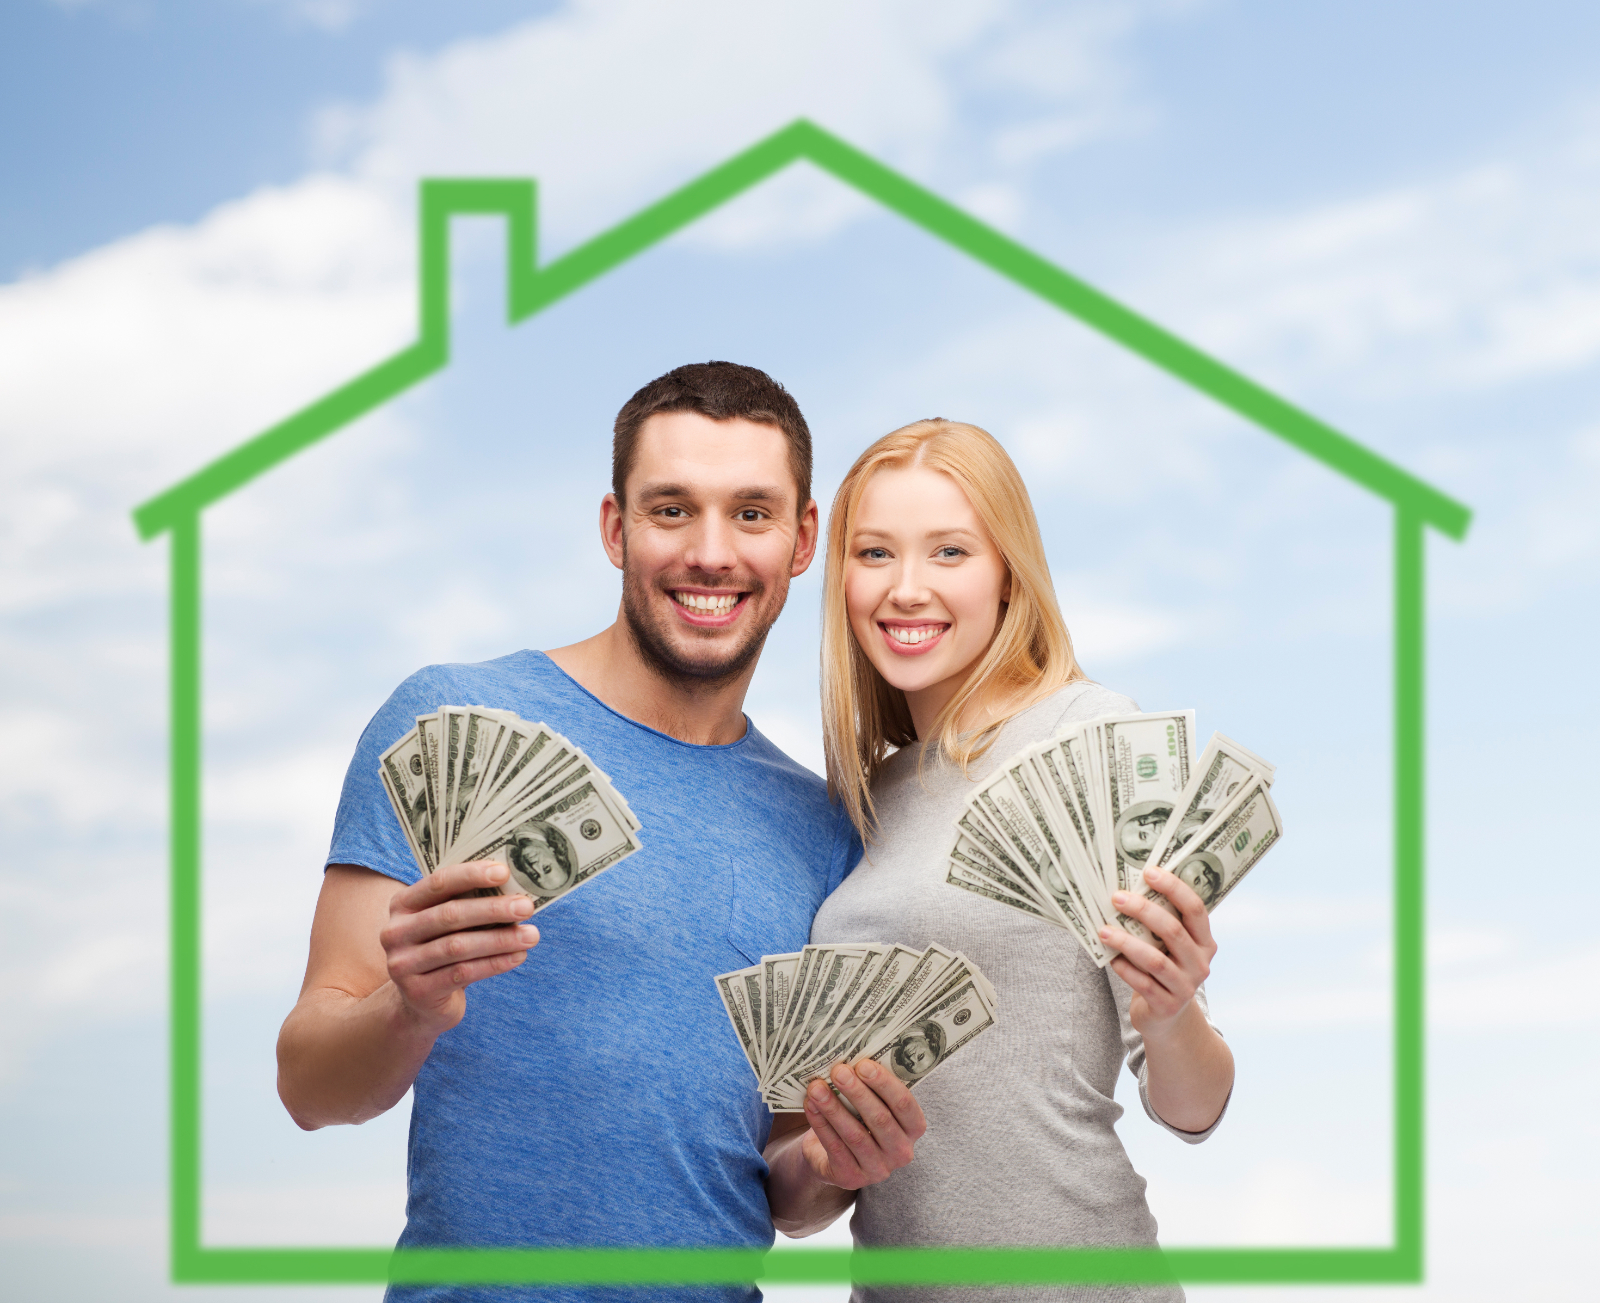 Be Smart When Buying Your Next Home